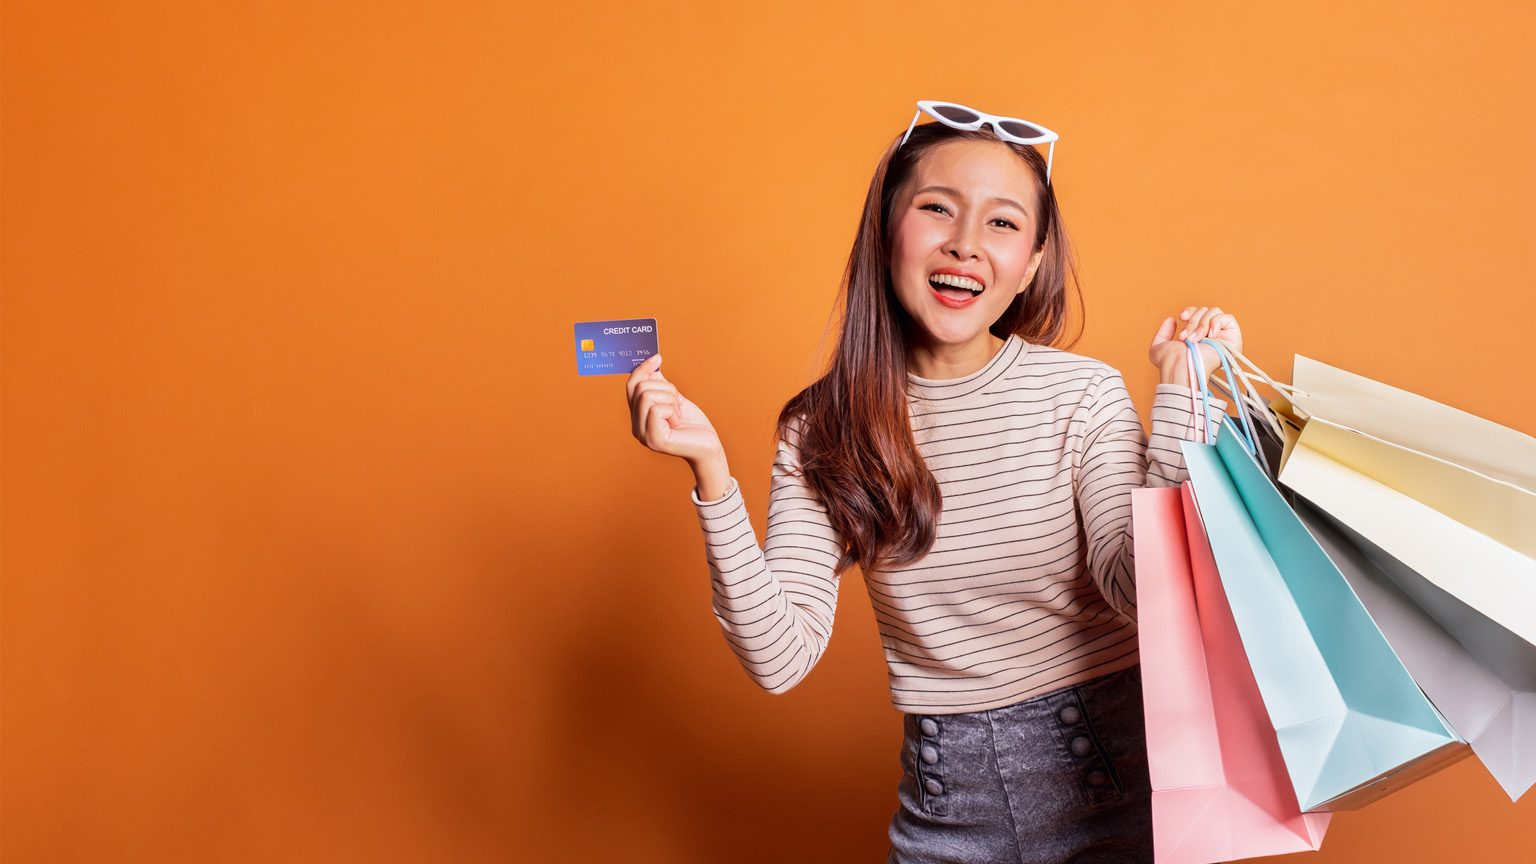 Lady holding a credit card and shopping bags